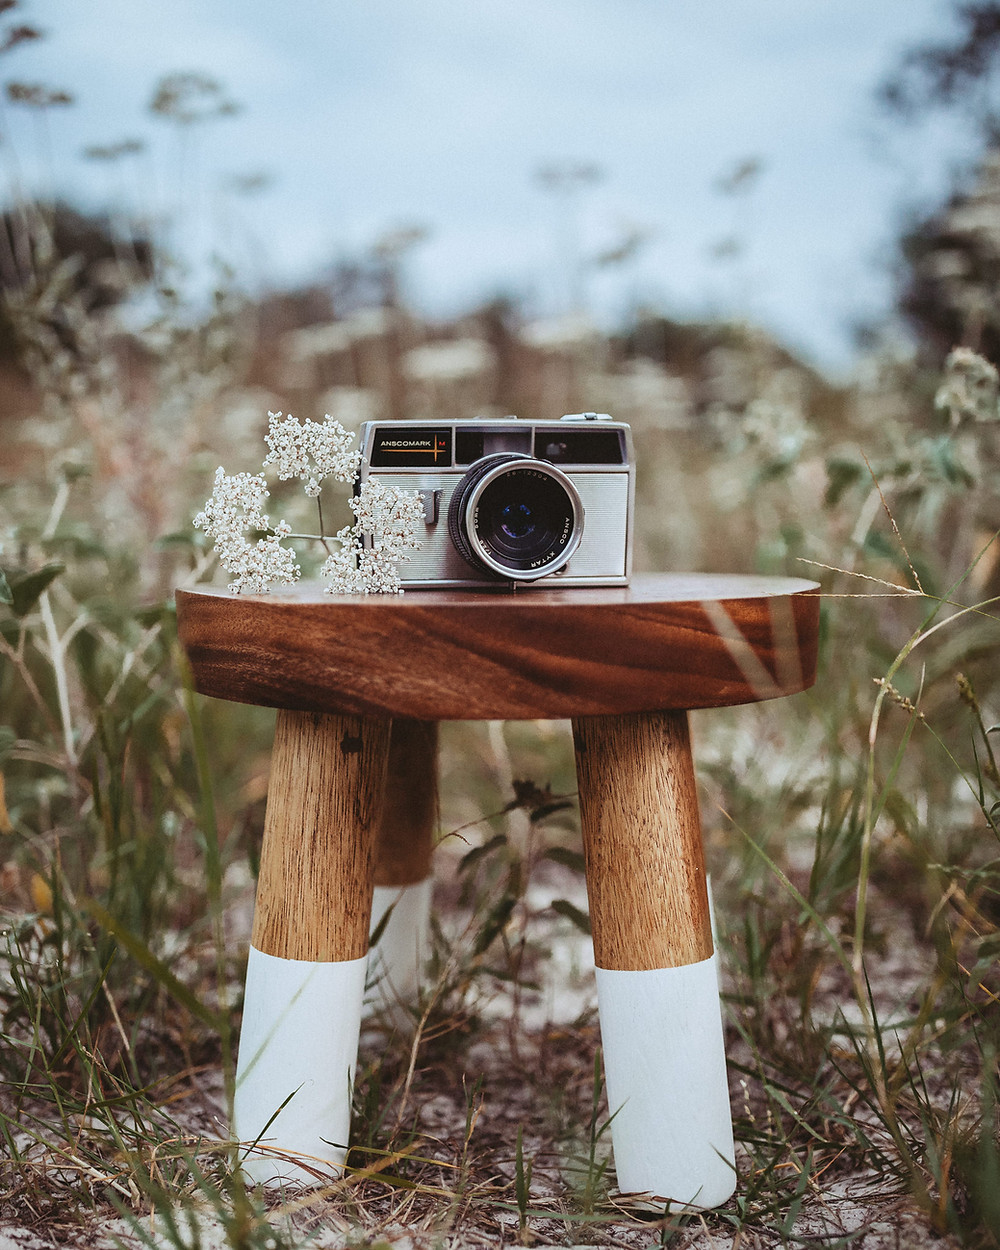 Vingtage film camera on wooden stool